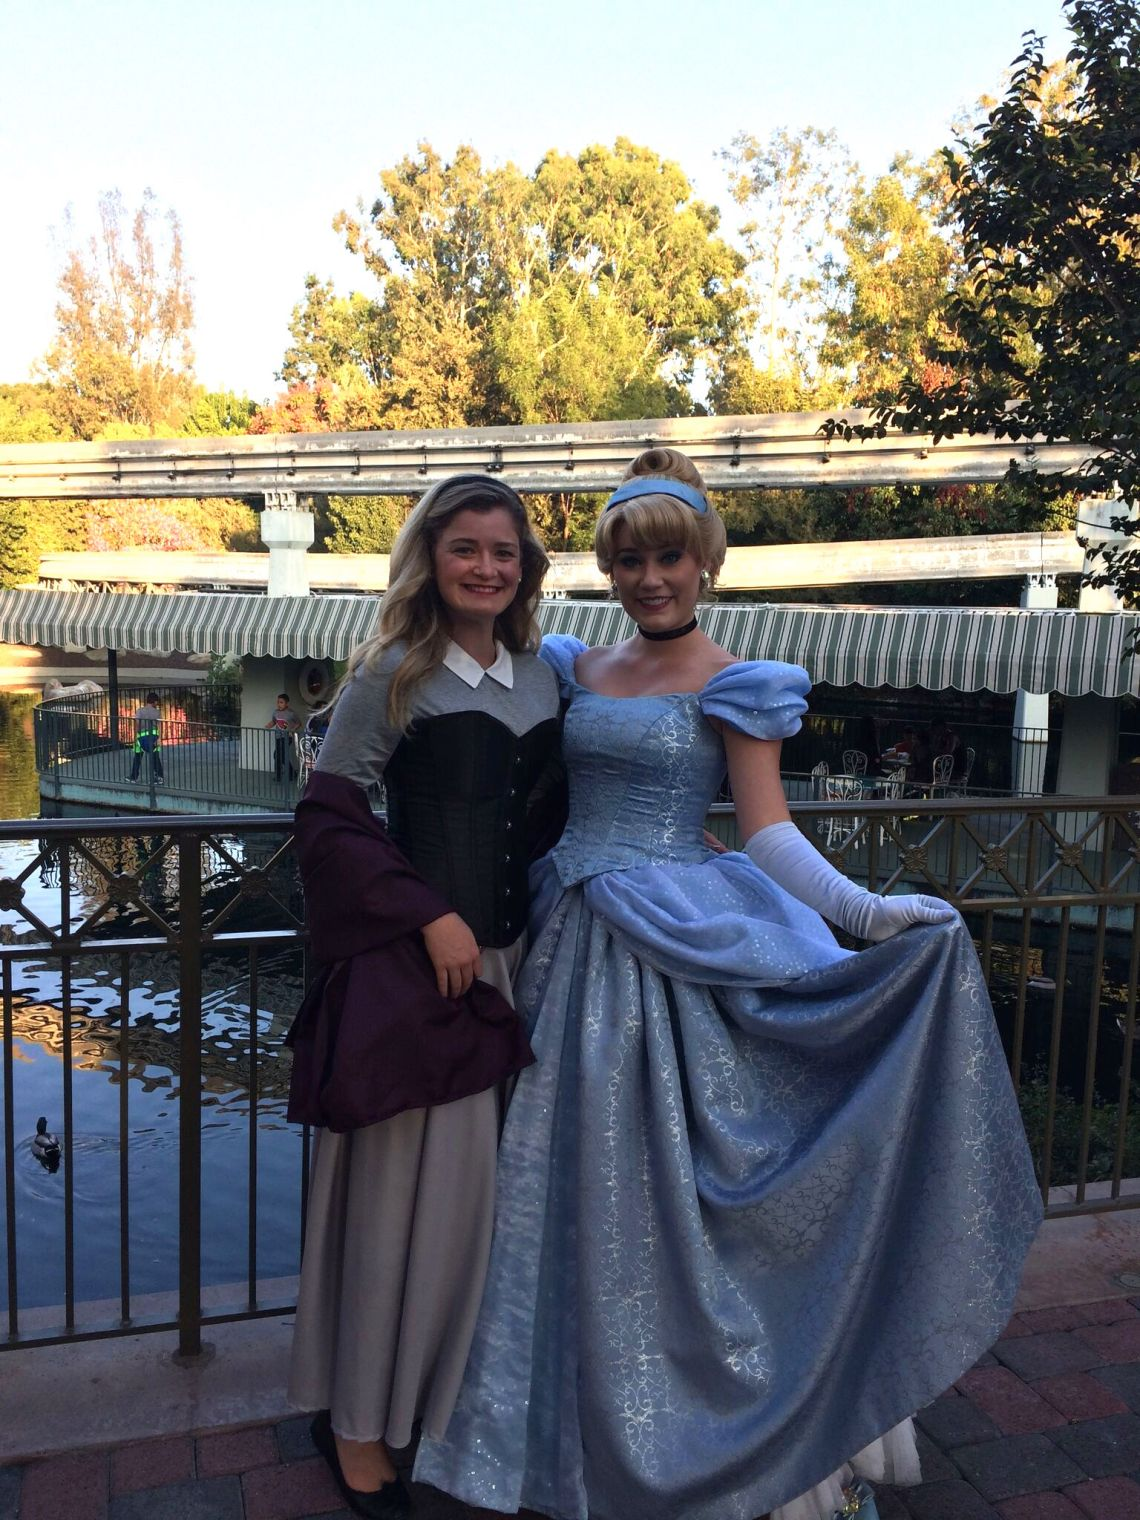 Where To Find Princesses Duchess Of Disneyland